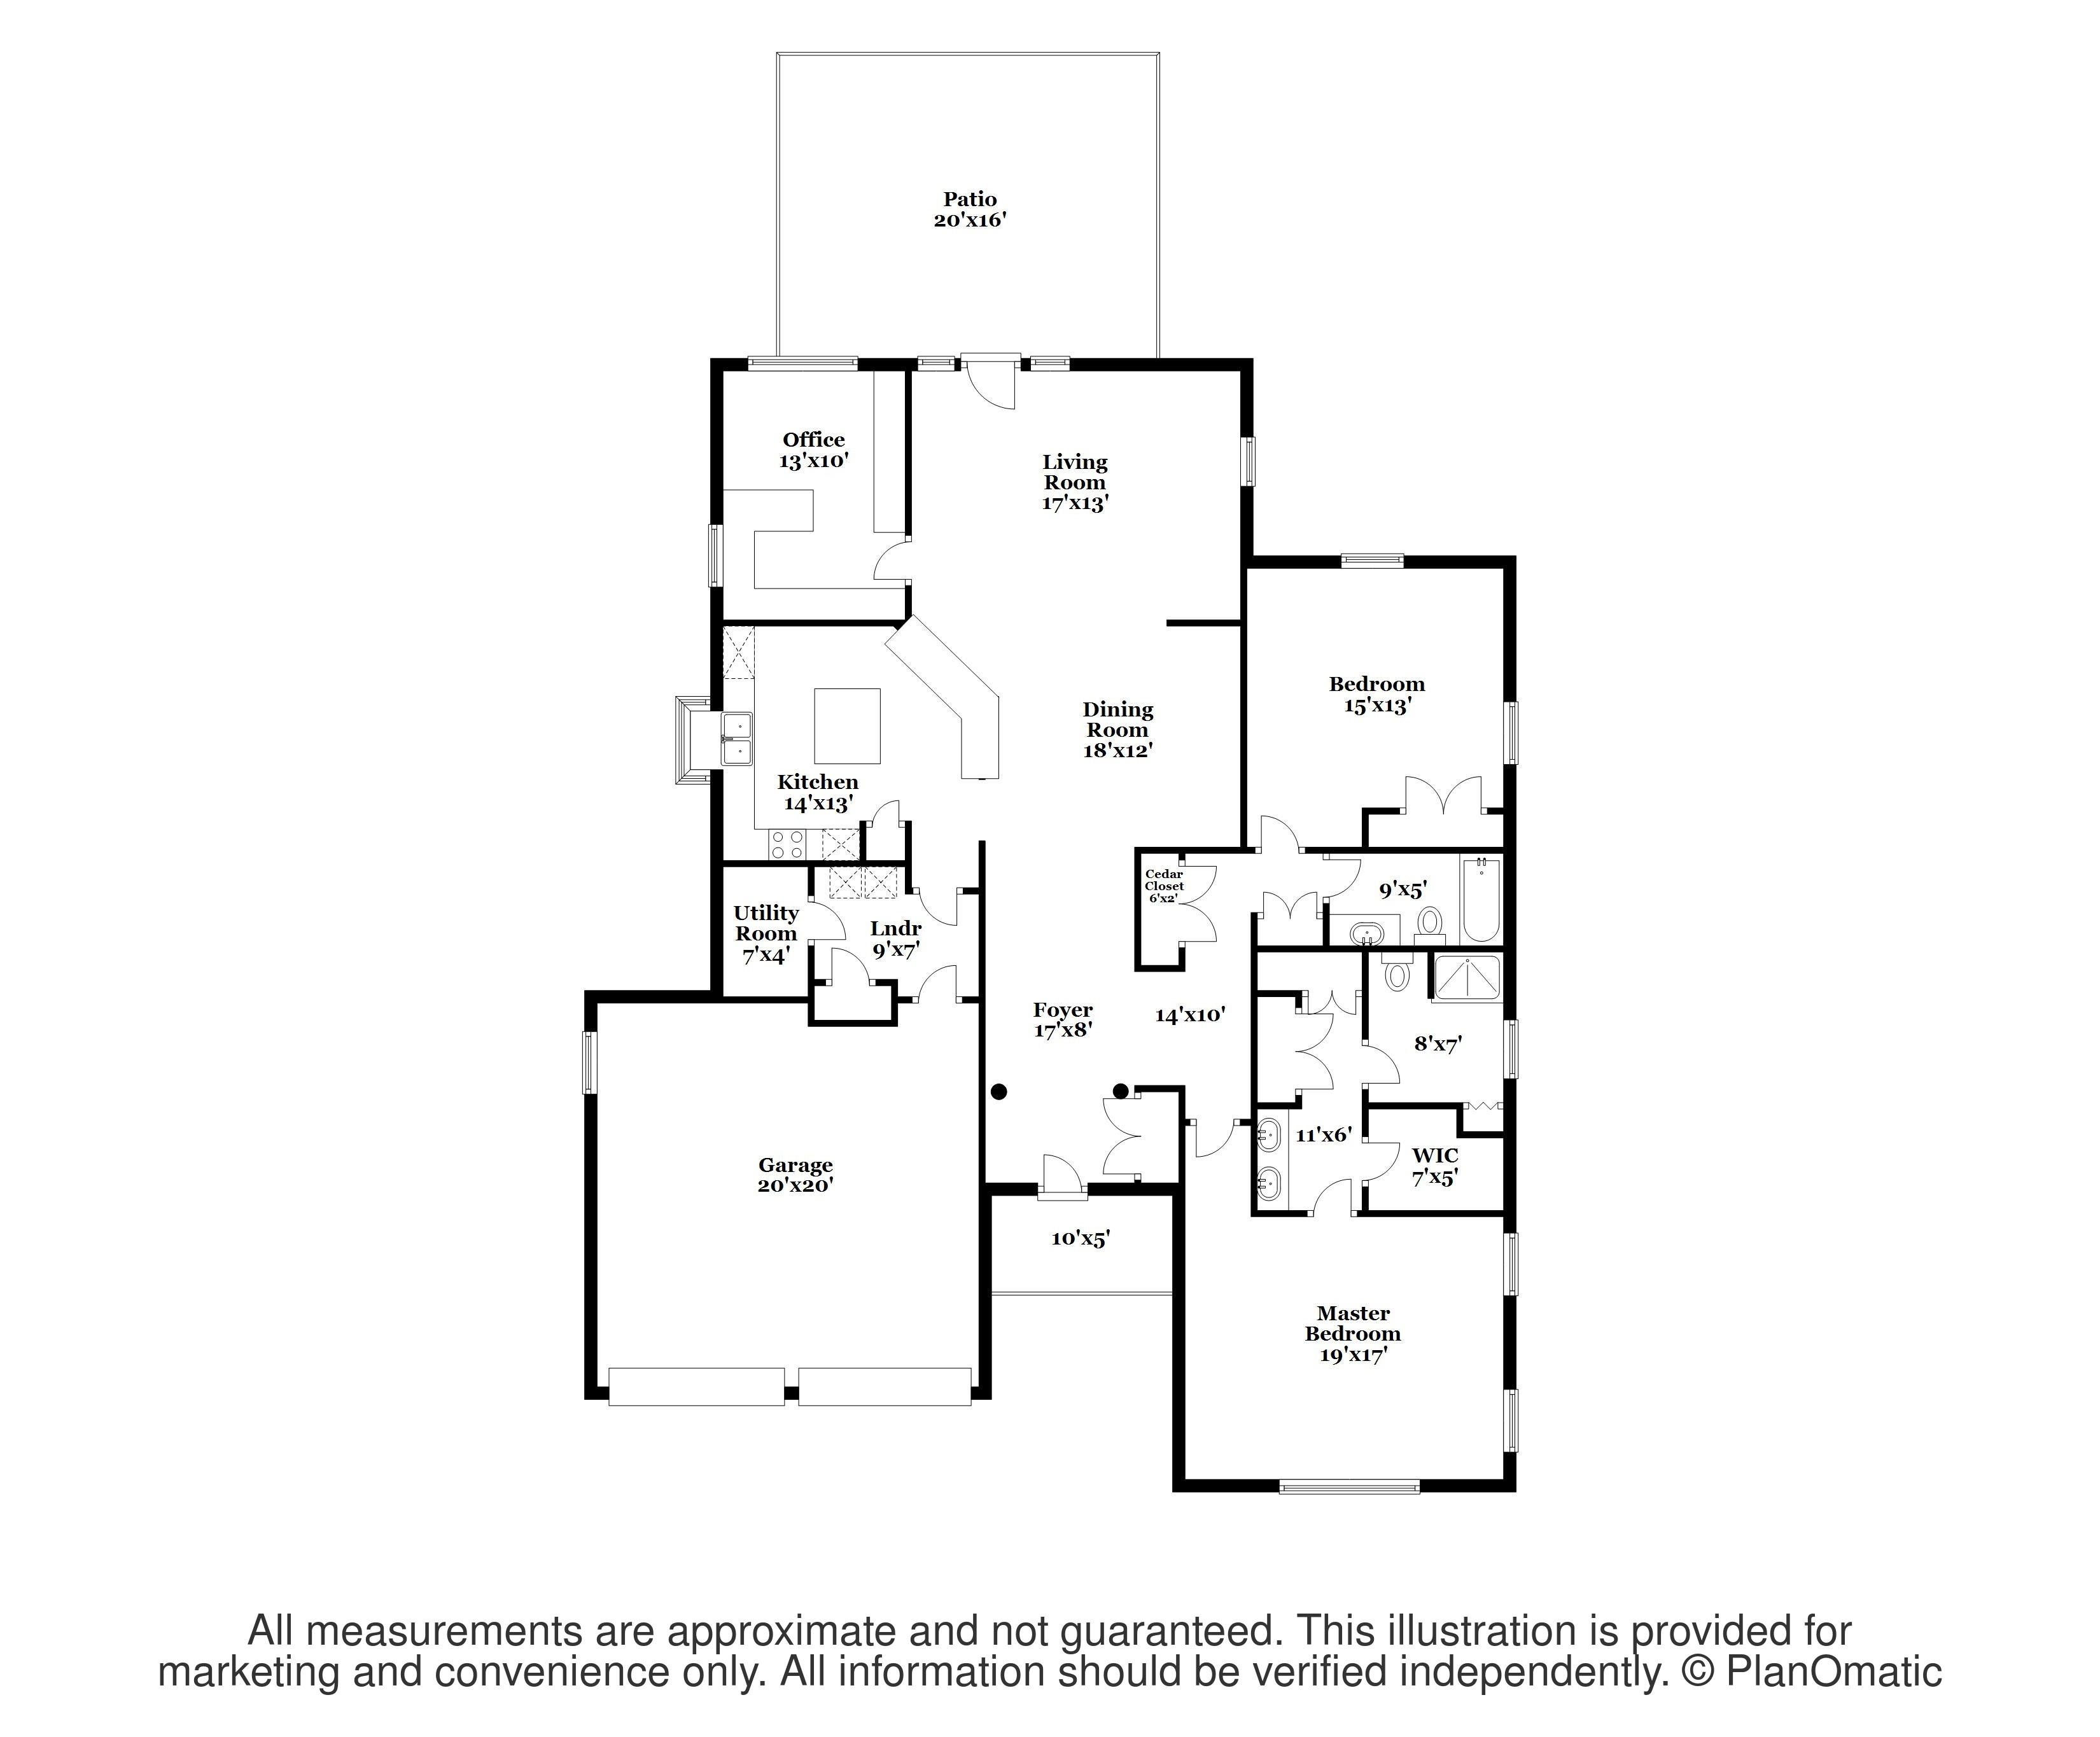 Single Family Homes for Sale at It's All Here… Space, Privacy & 5-Star Amenities 2 Birchwood Court, Princeton, New Jersey 08540 United States